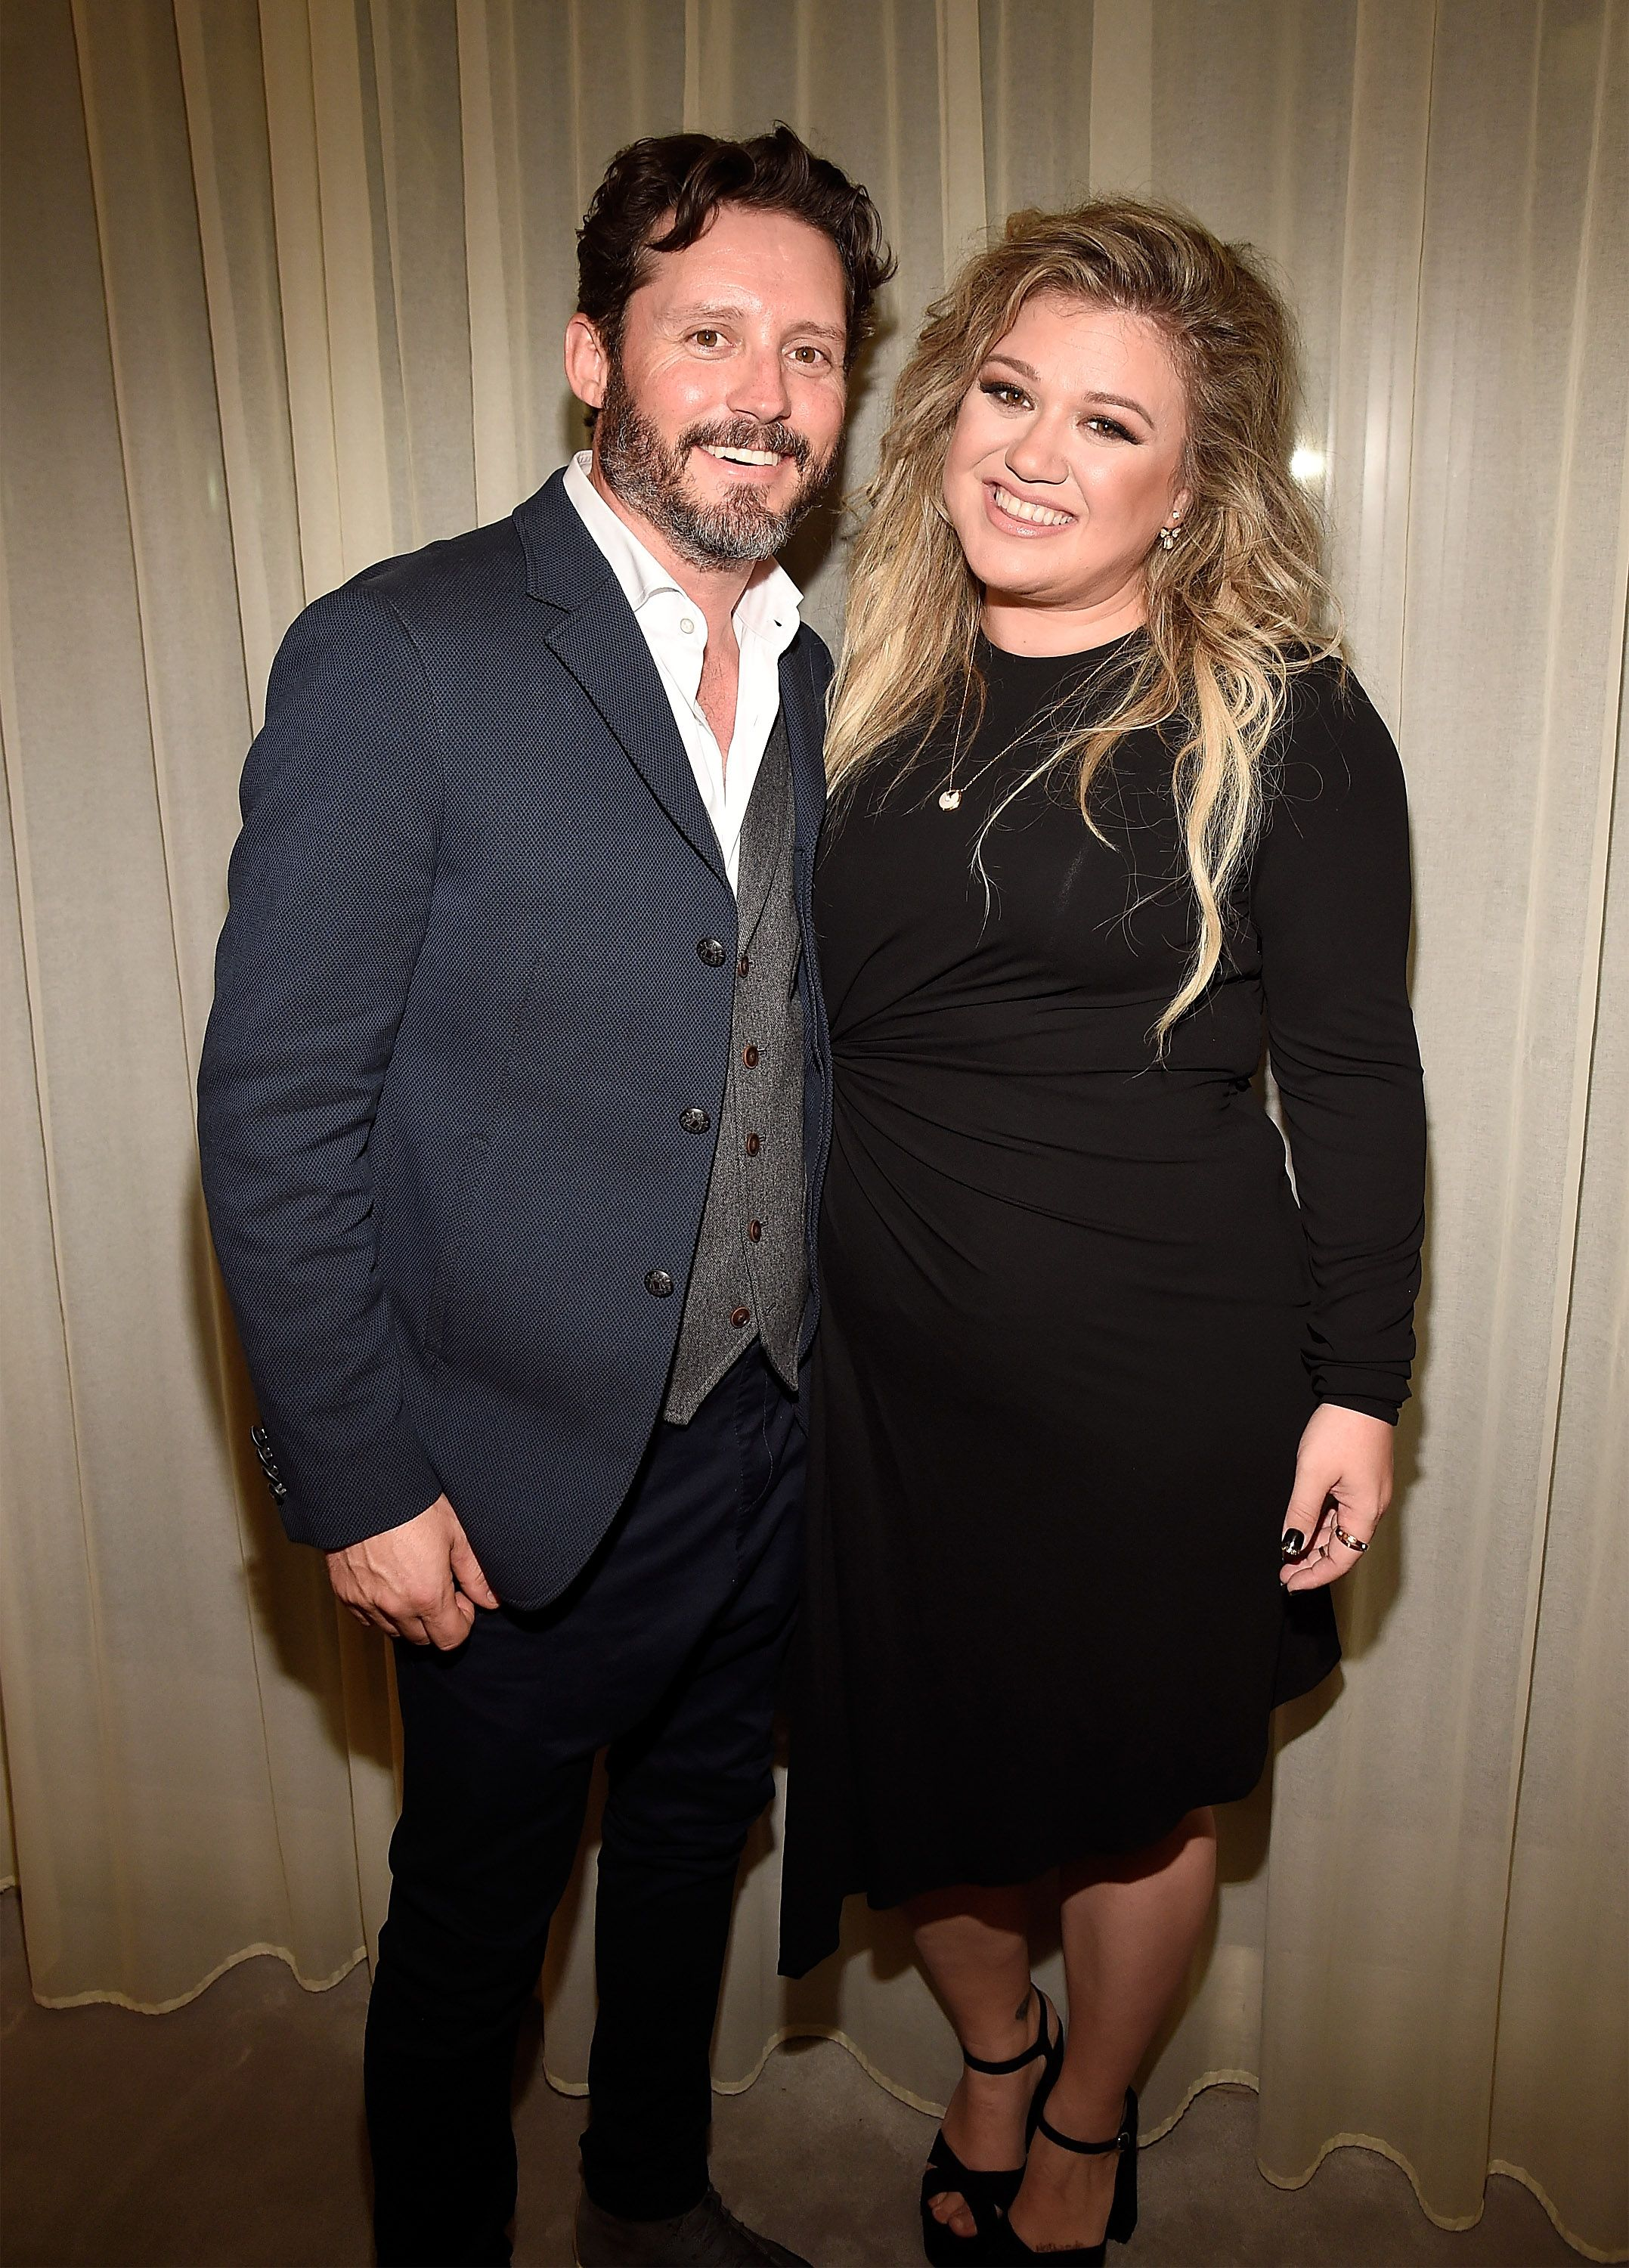 Kelly Clarkson with her ex-husband Brandon Blackstock / Getty Images